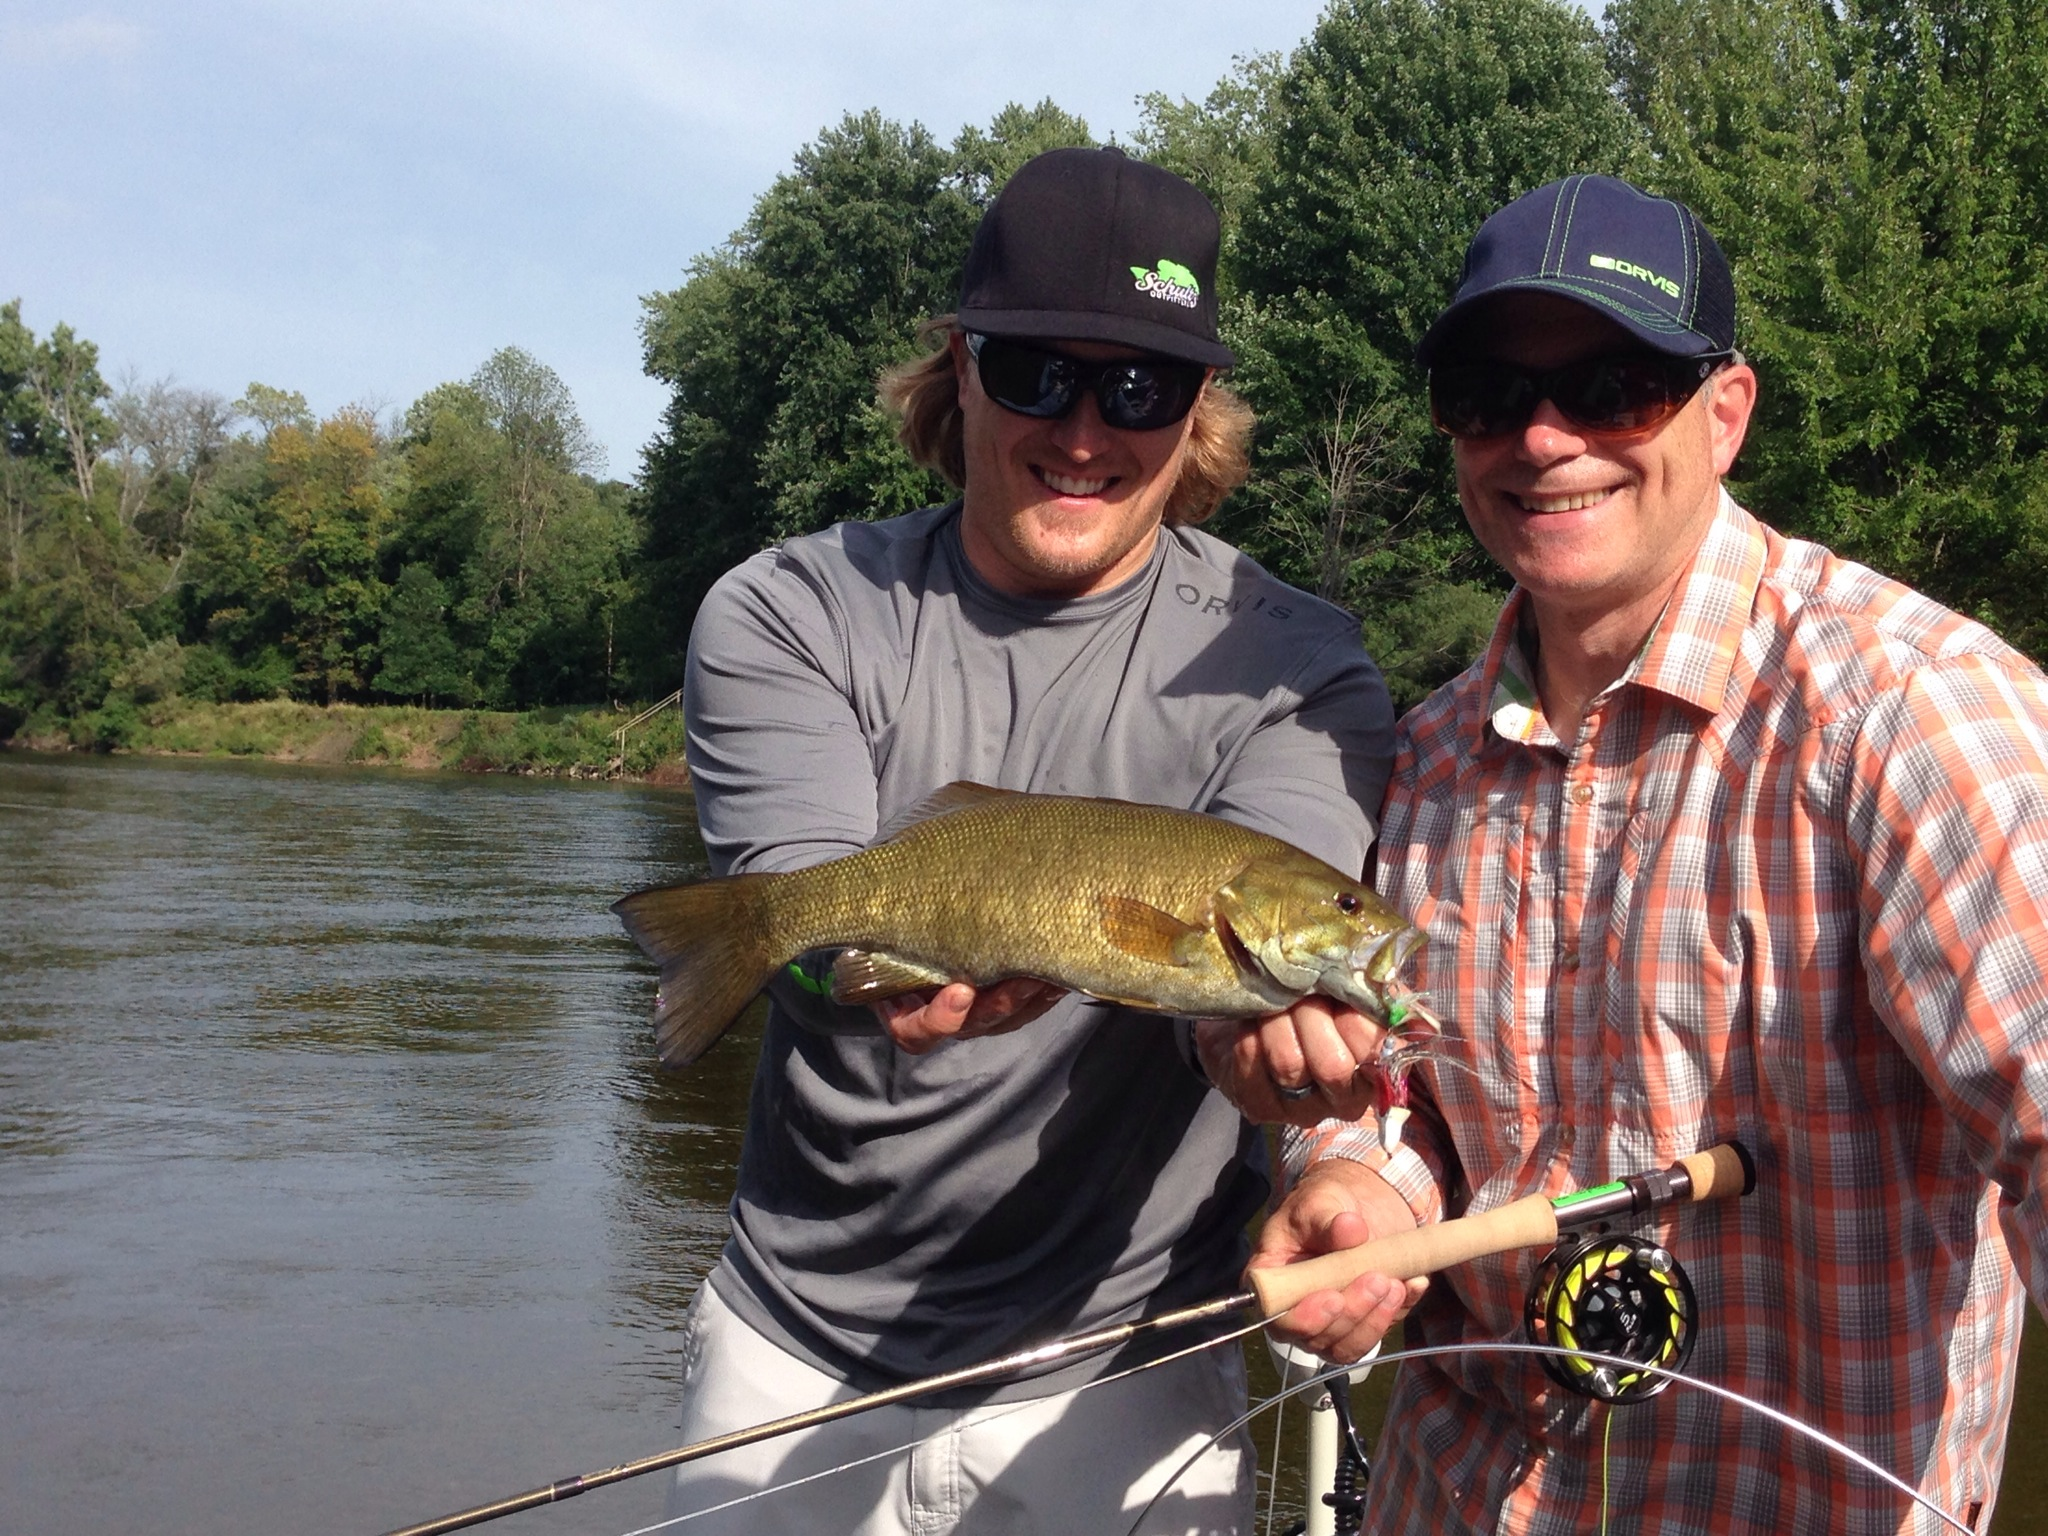 Riverquest charters mi orvis dealers the new recon for Orvis fishing report